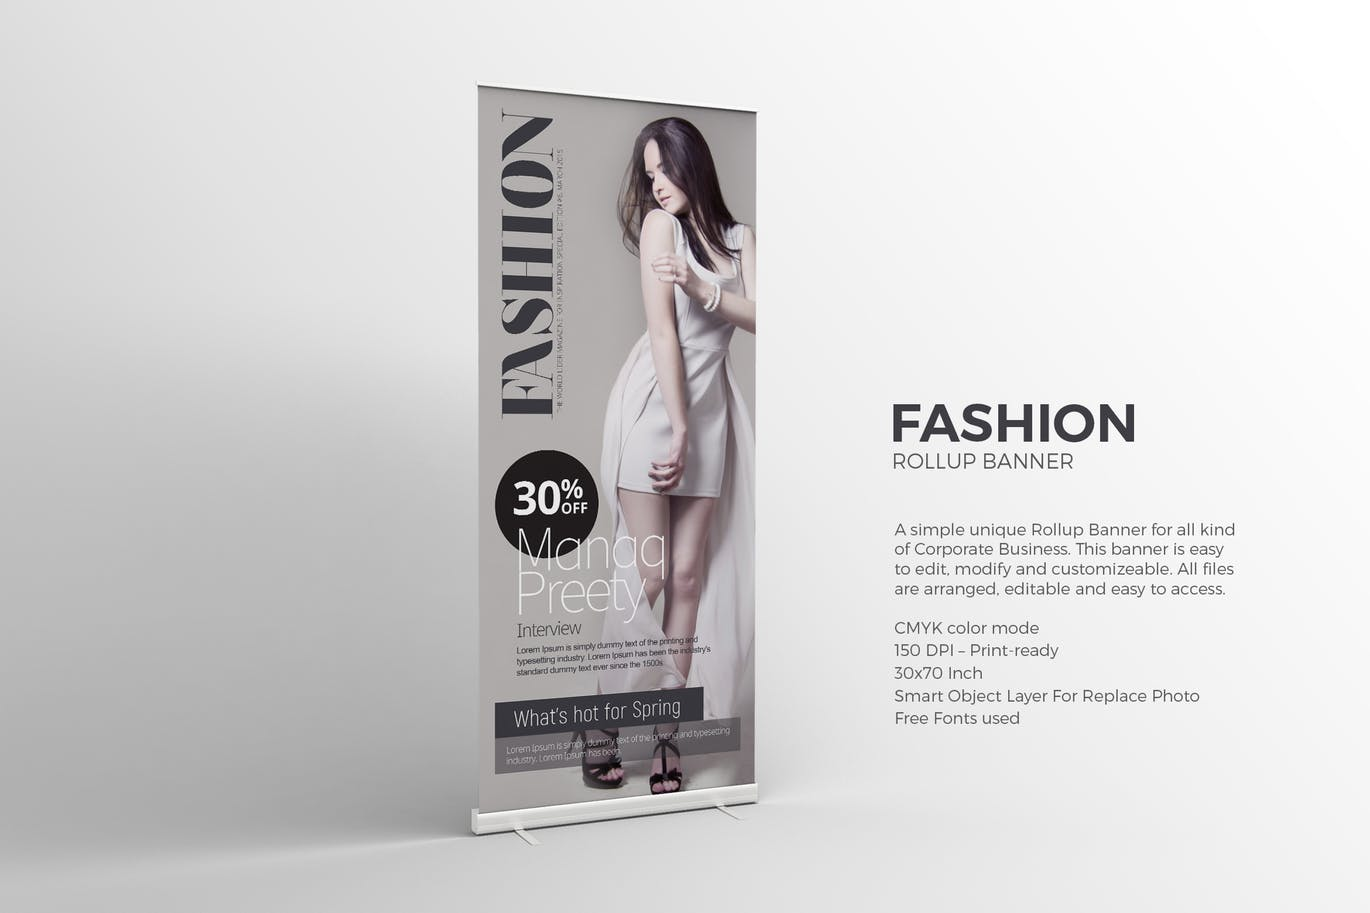 Fashion Roll-up Banner graphix_shiv_BILMODESIGN